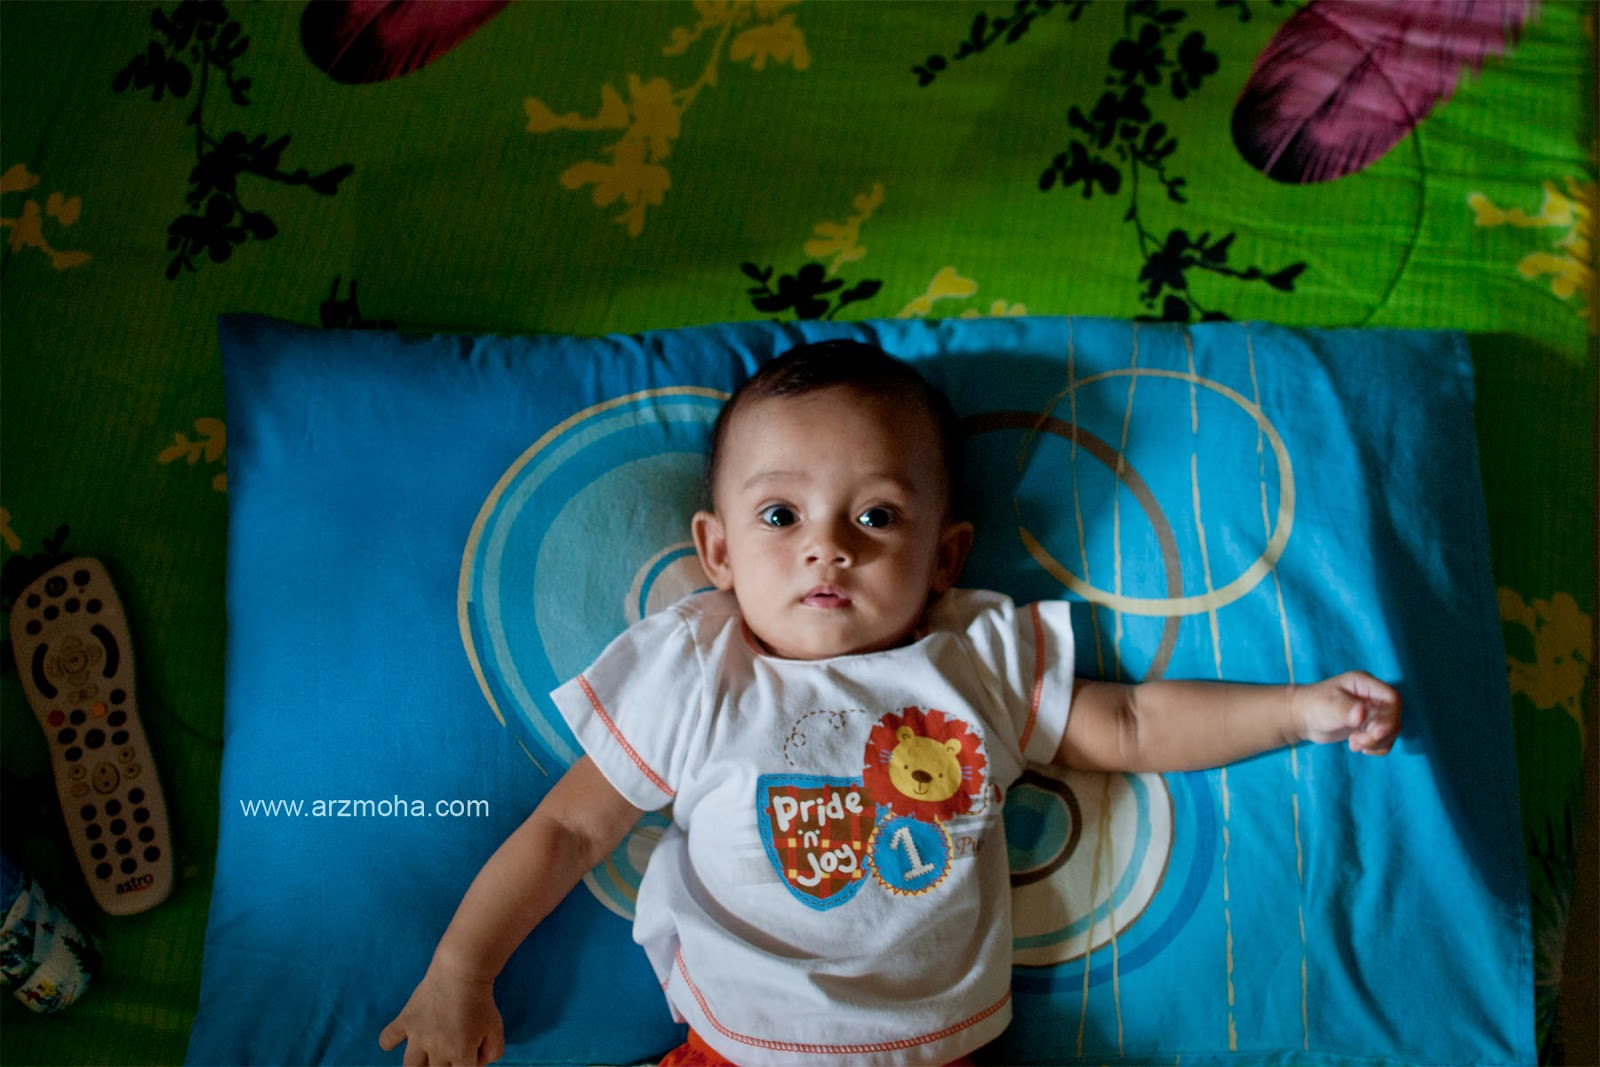 teknik editing, photography, vignette, cik puteri, kids, my daughter, baby, i love baby, gambar kanak-kanak cantik, bantal biru,